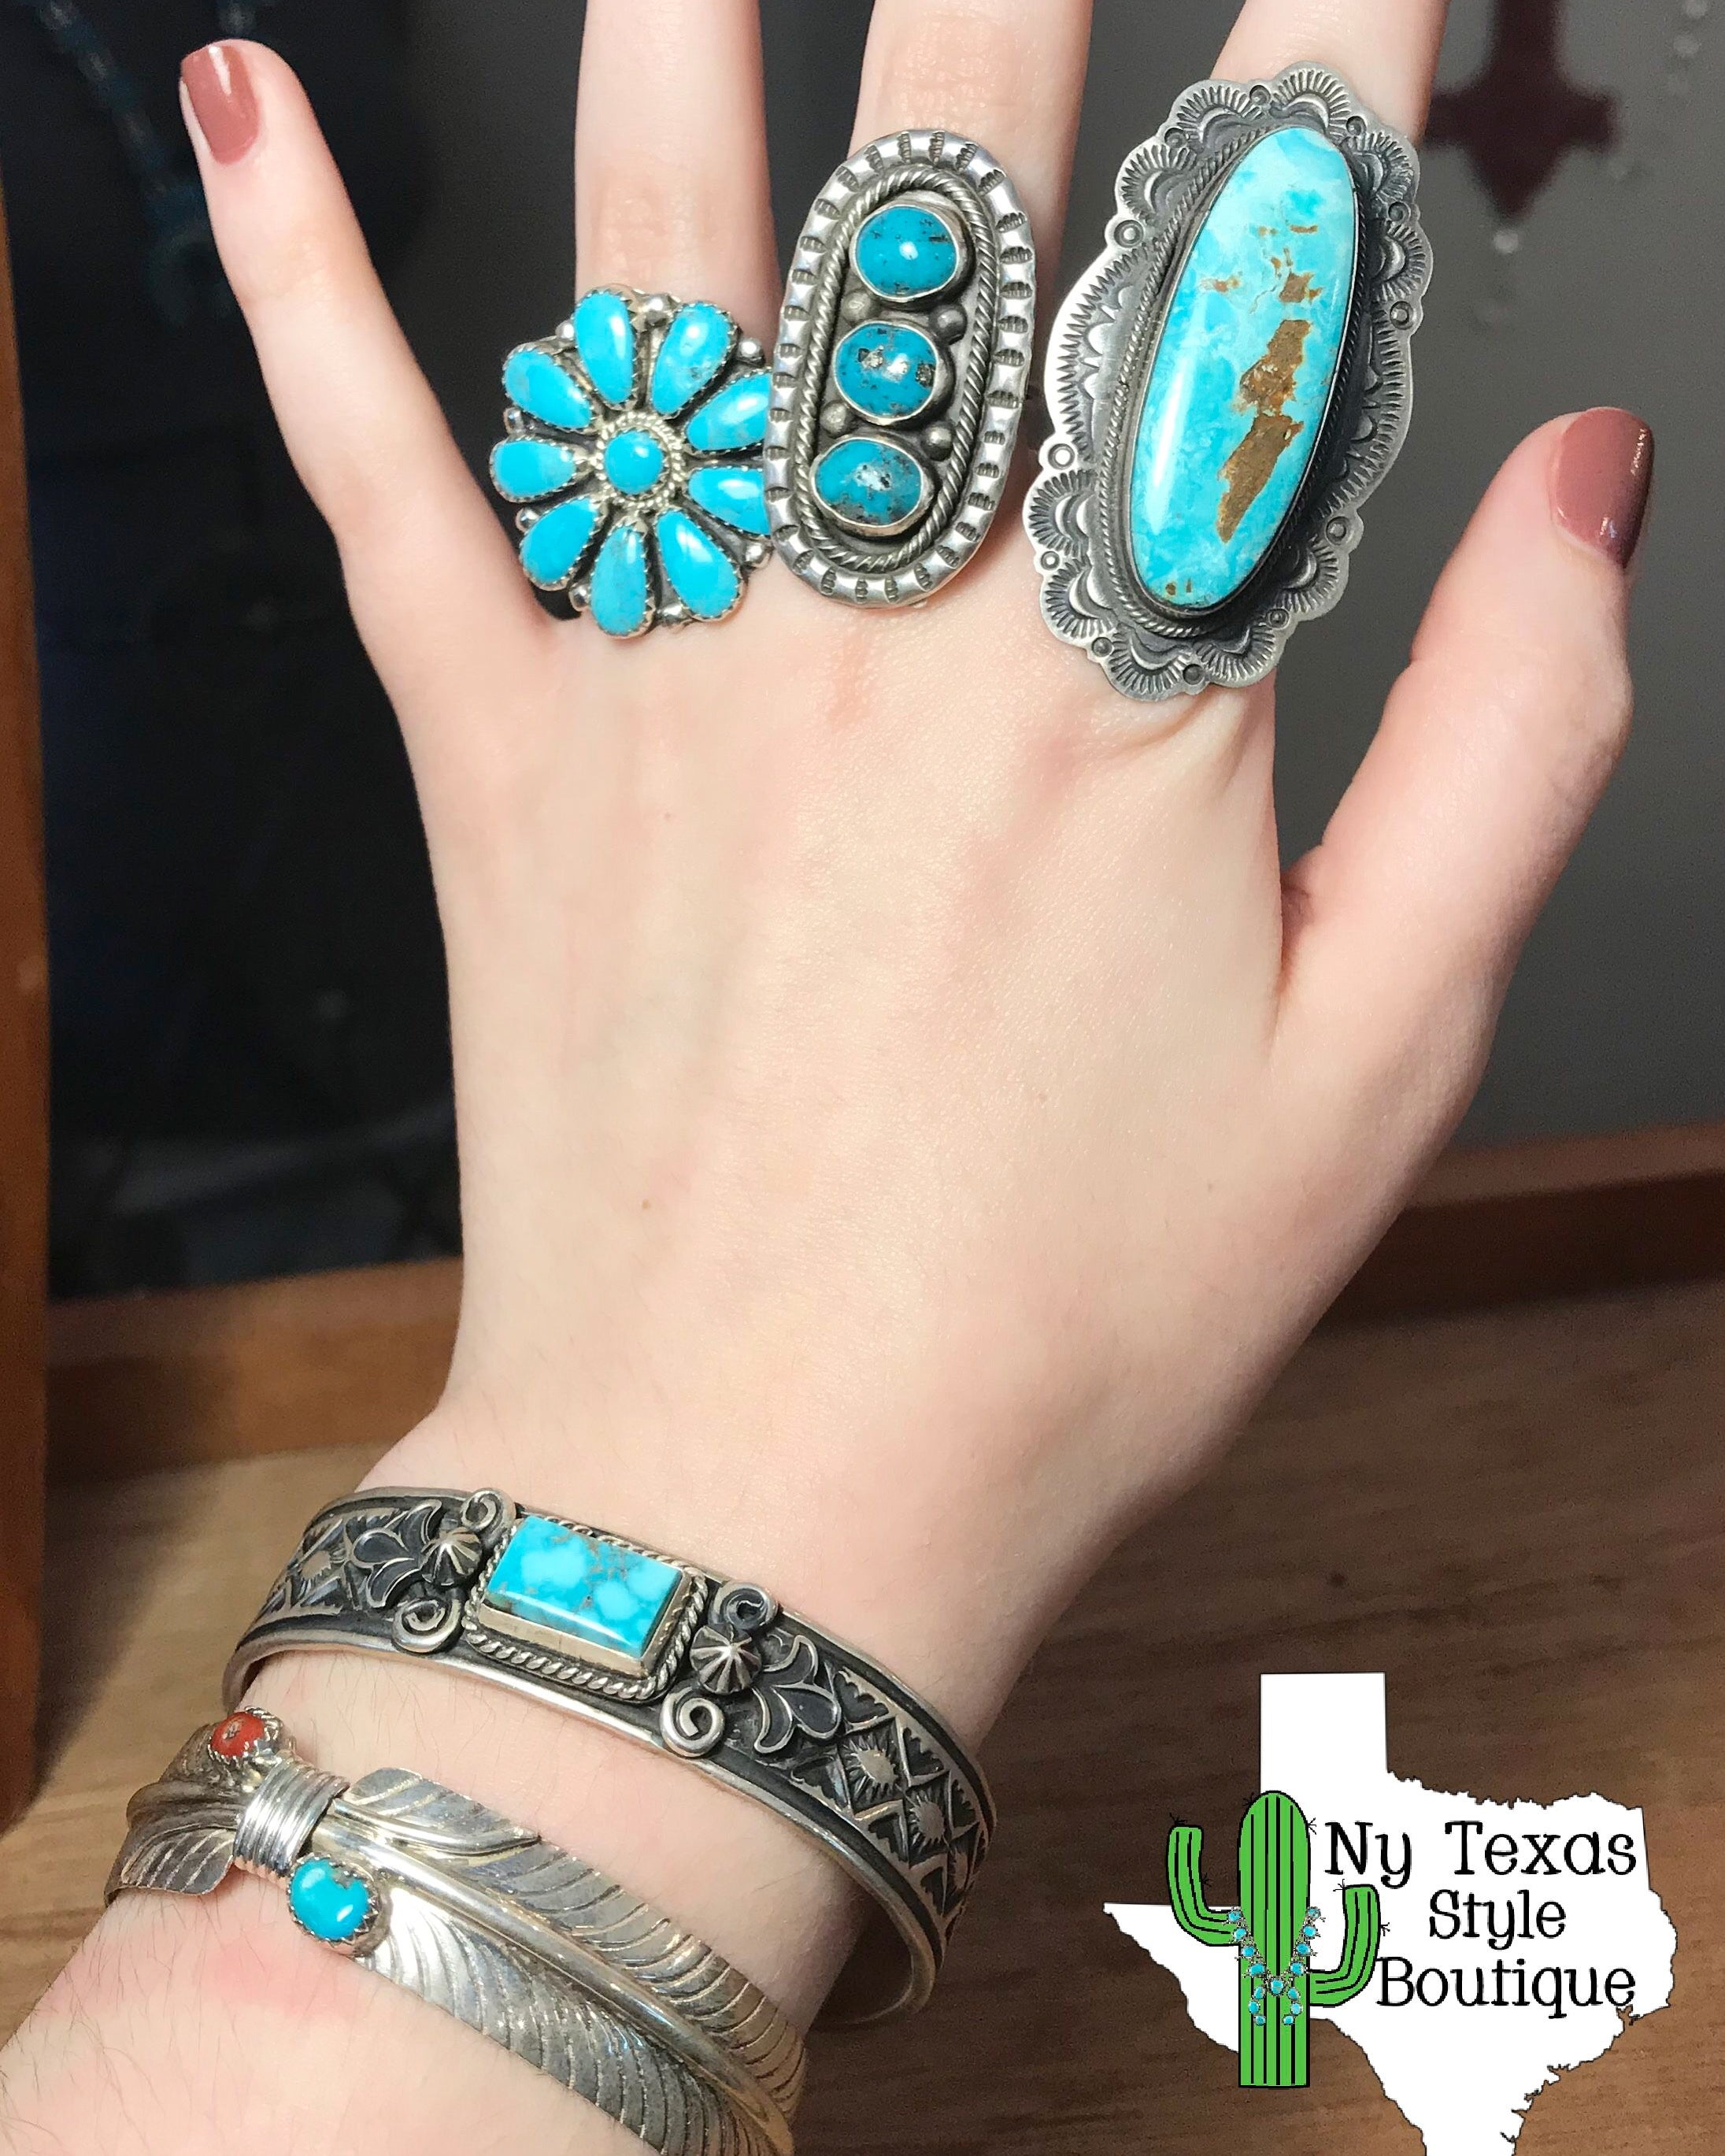 The Neon Moon turquoise rings - Ny Texas Style Boutique